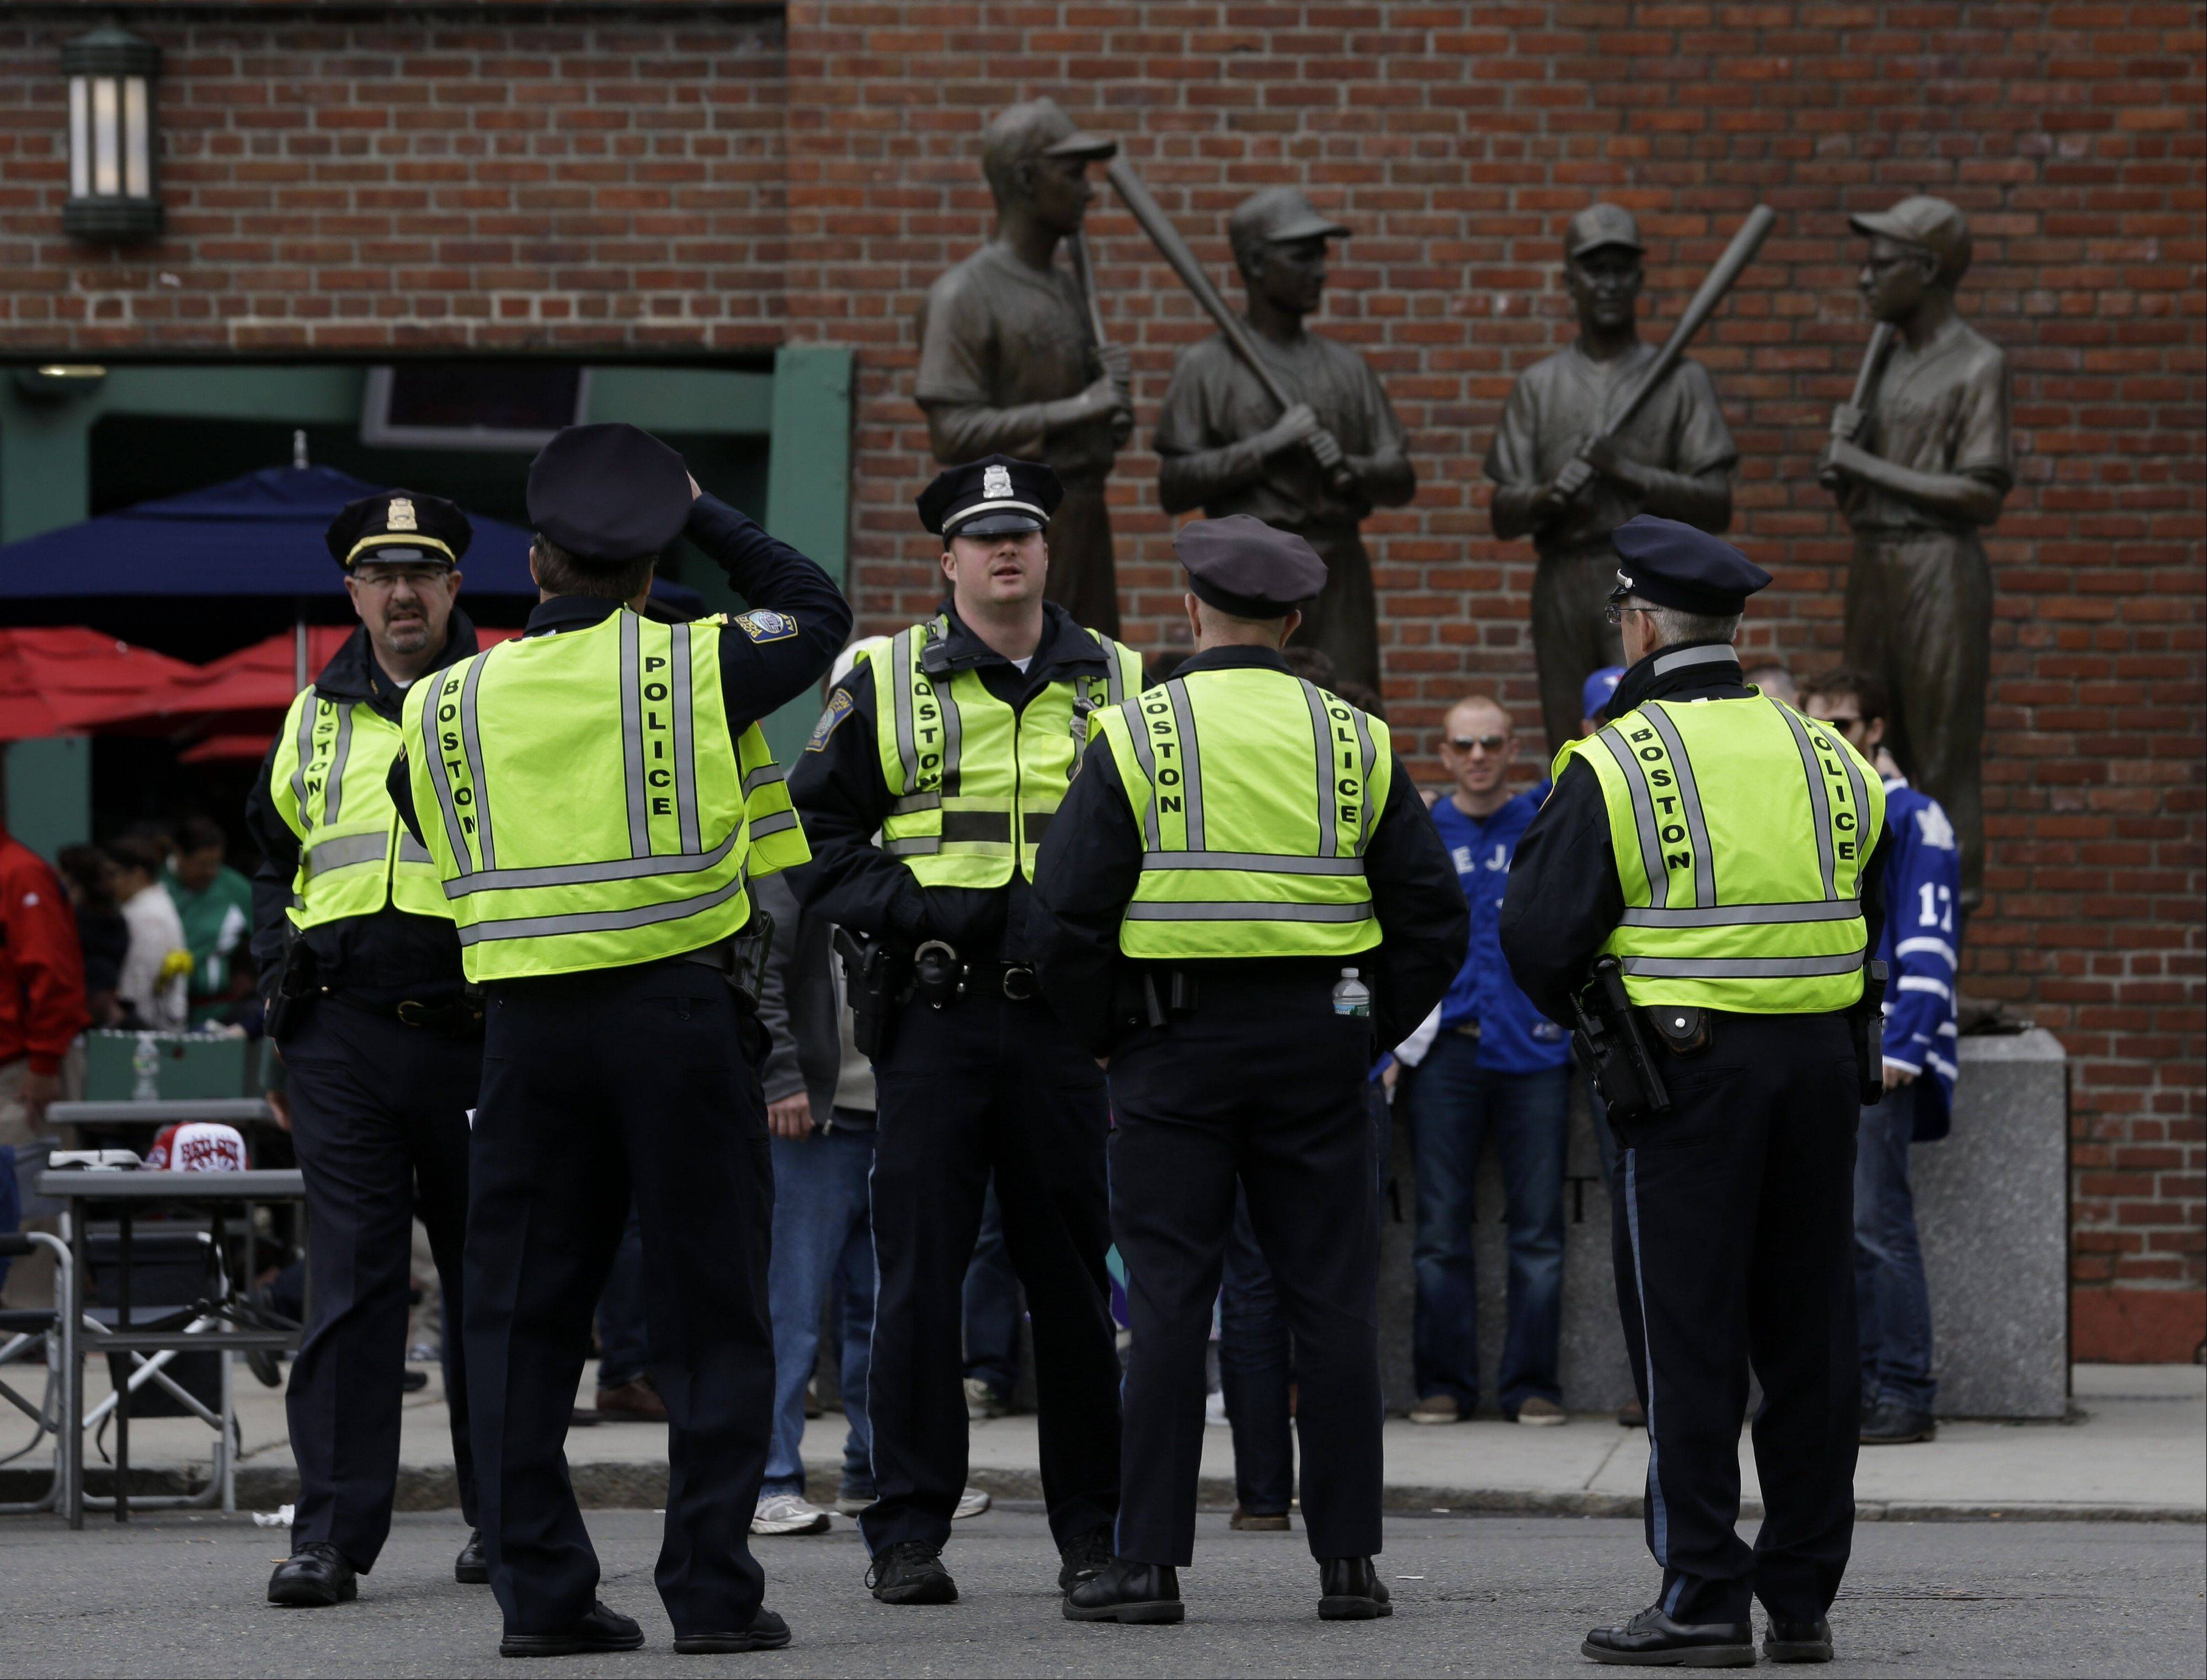 Police officers stand near statues of fromer Boston Red Sox greats, from left, Ted Williams, Bobby Doerr, Johnny Pesky and Dom DiMaggio during a baseball game between the Kansas City Royals and the Boston Red Sox, the first game held in the city following the Boston Marathon explosions, Saturday, April 20, 2013, in Boston. Police captured Dzhokhar Tsarnaev, 19, the surviving Boston Marathon bombing suspect, late Friday, after a wild car chase and gun battle earlier in the day left his older brother dead.